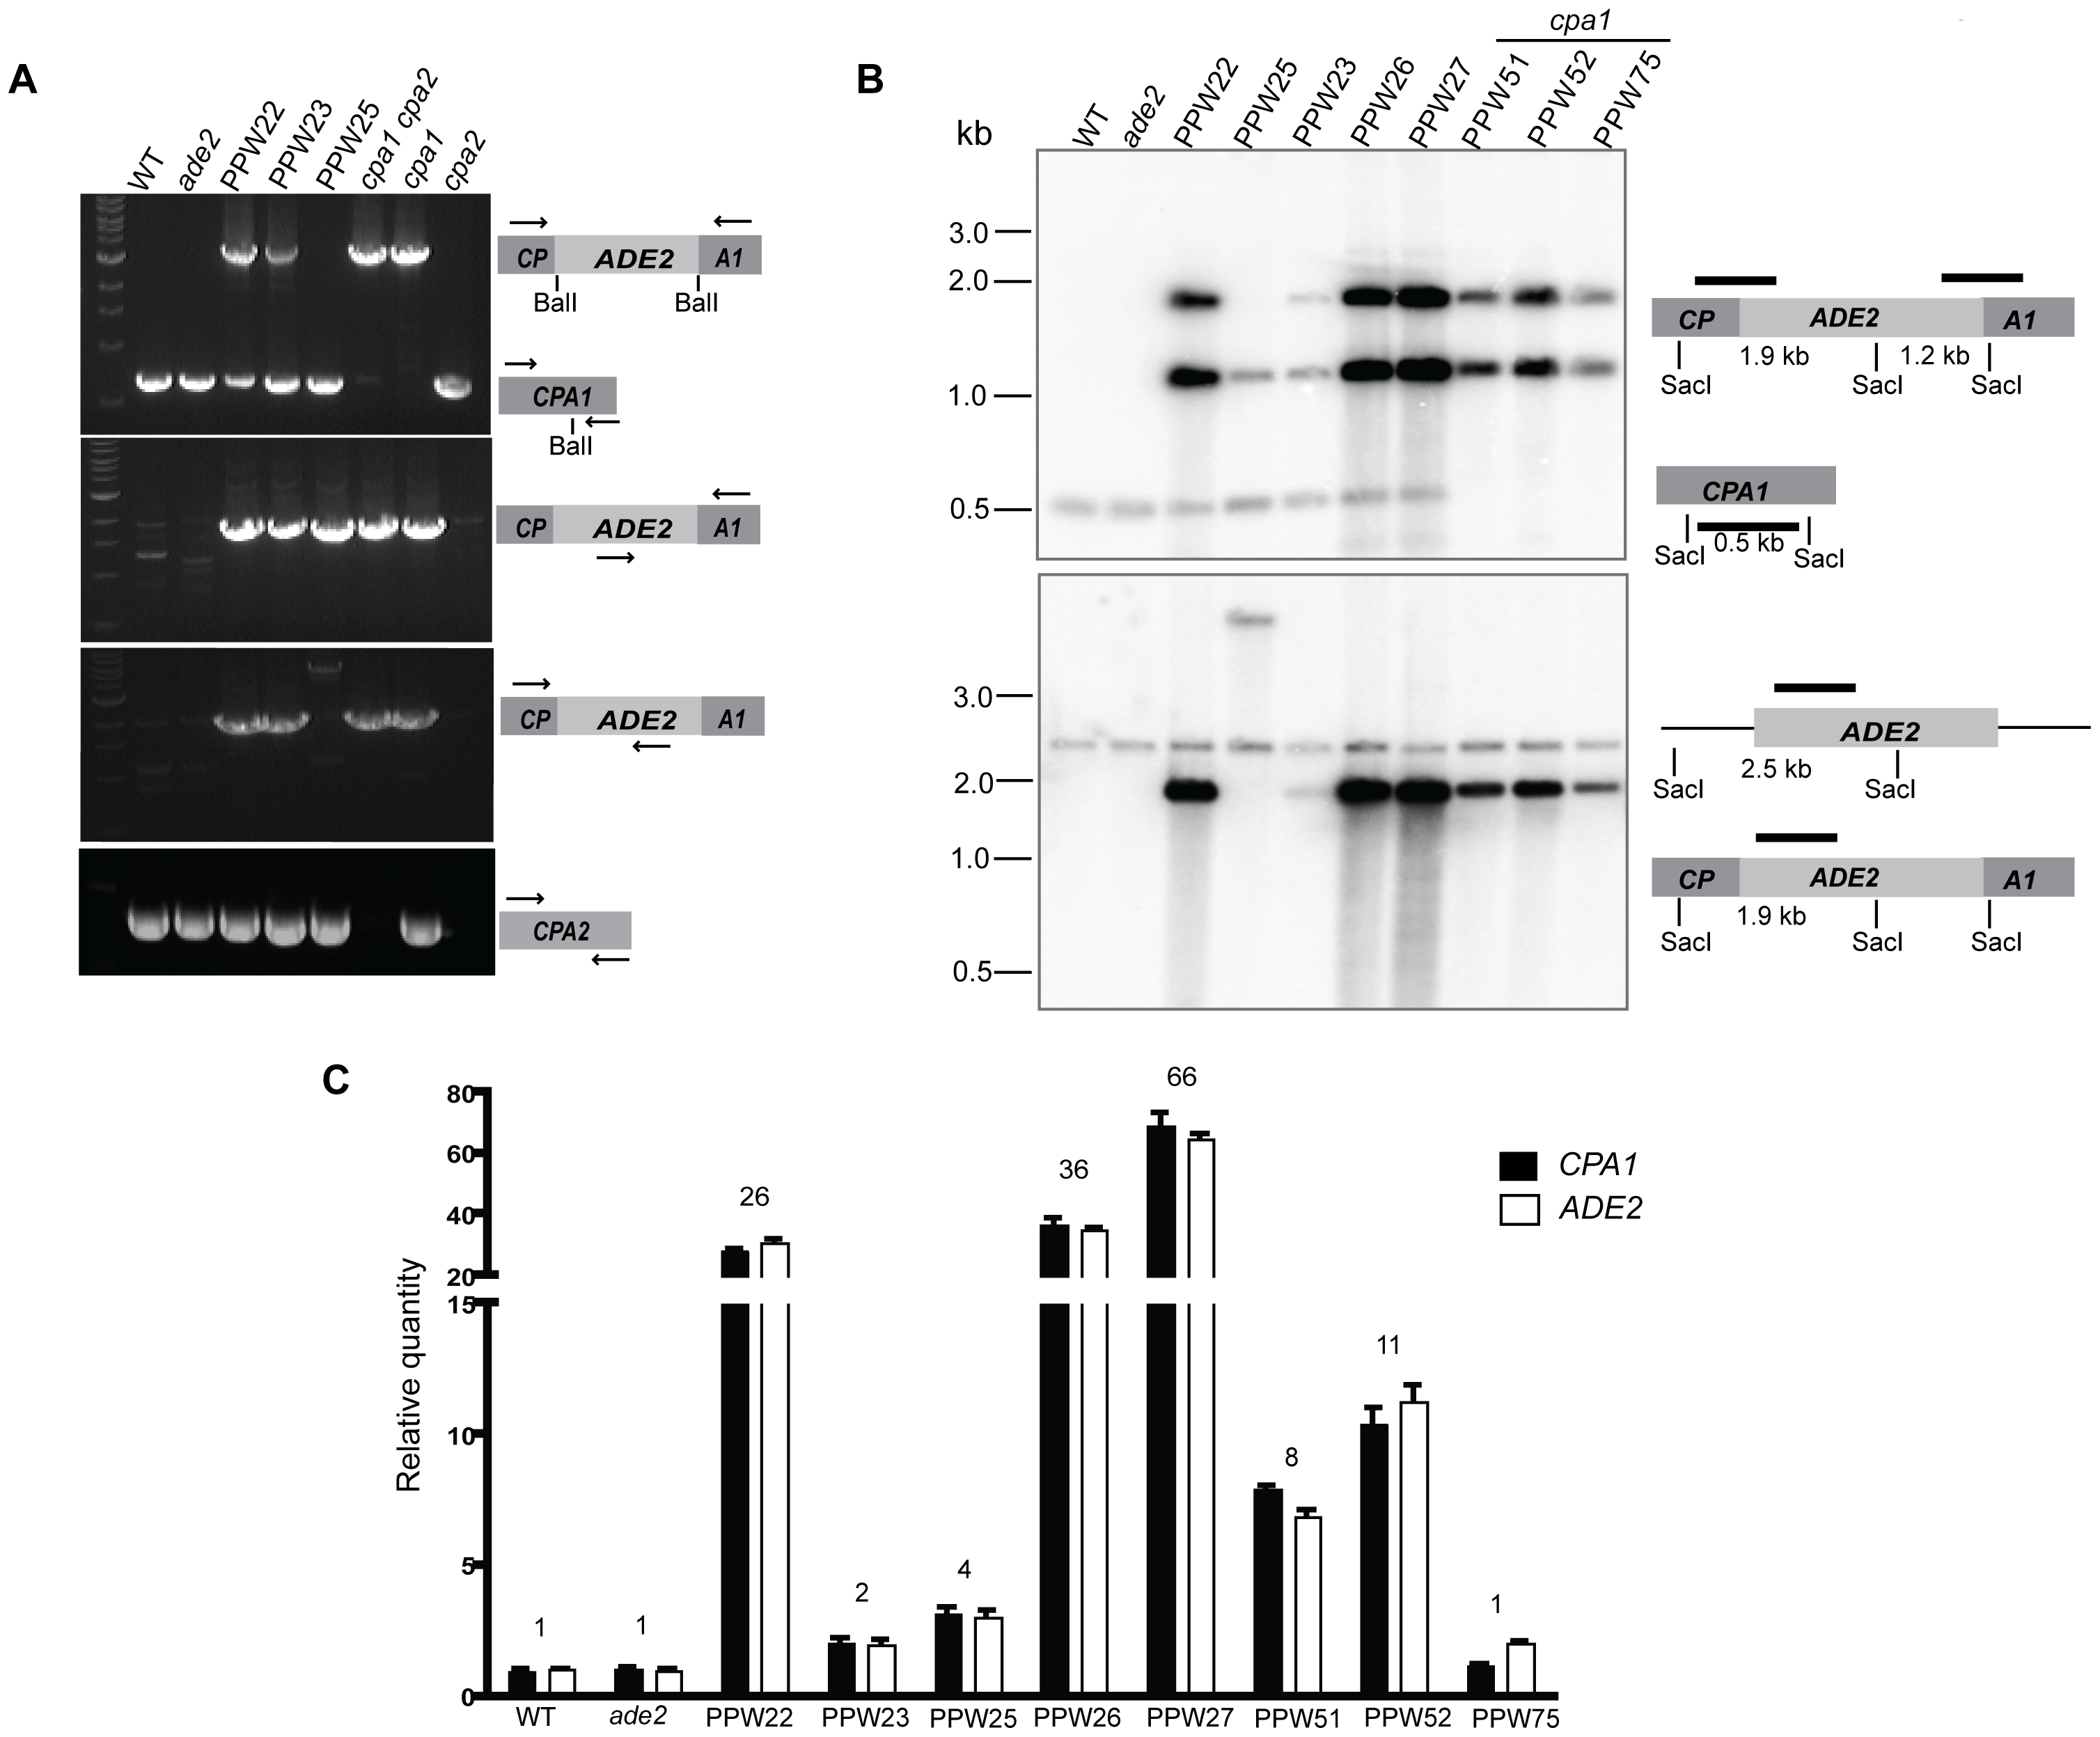 The <i>cpa1::ADE2</i> transgenes are ectopically integrated into the genome of the transformed strains in different copy numbers.